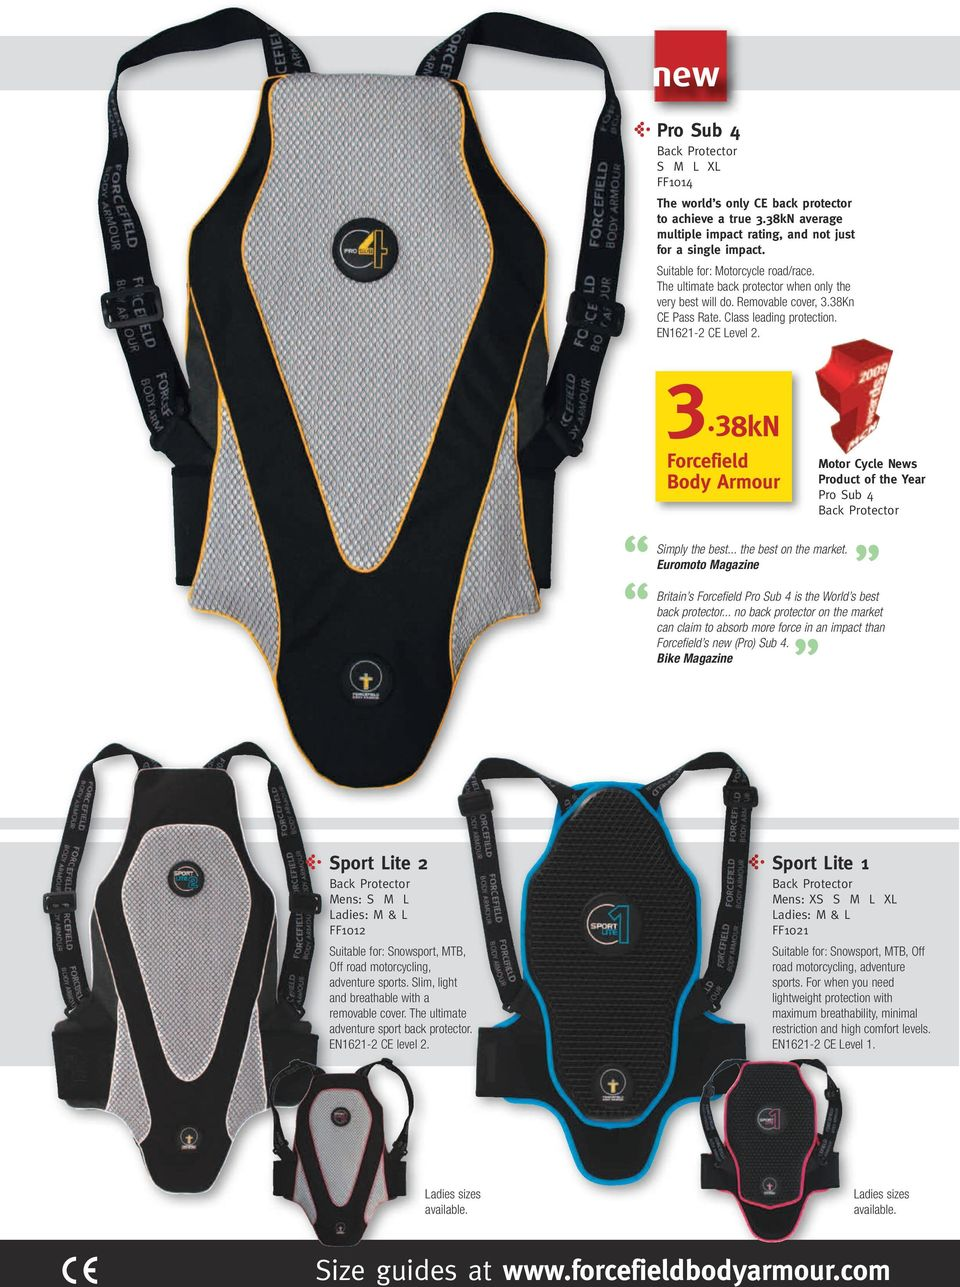 .. the best on the market. Euromoto Magazine Britain s Forcefield Pro Sub 4 is the World s best back protector.